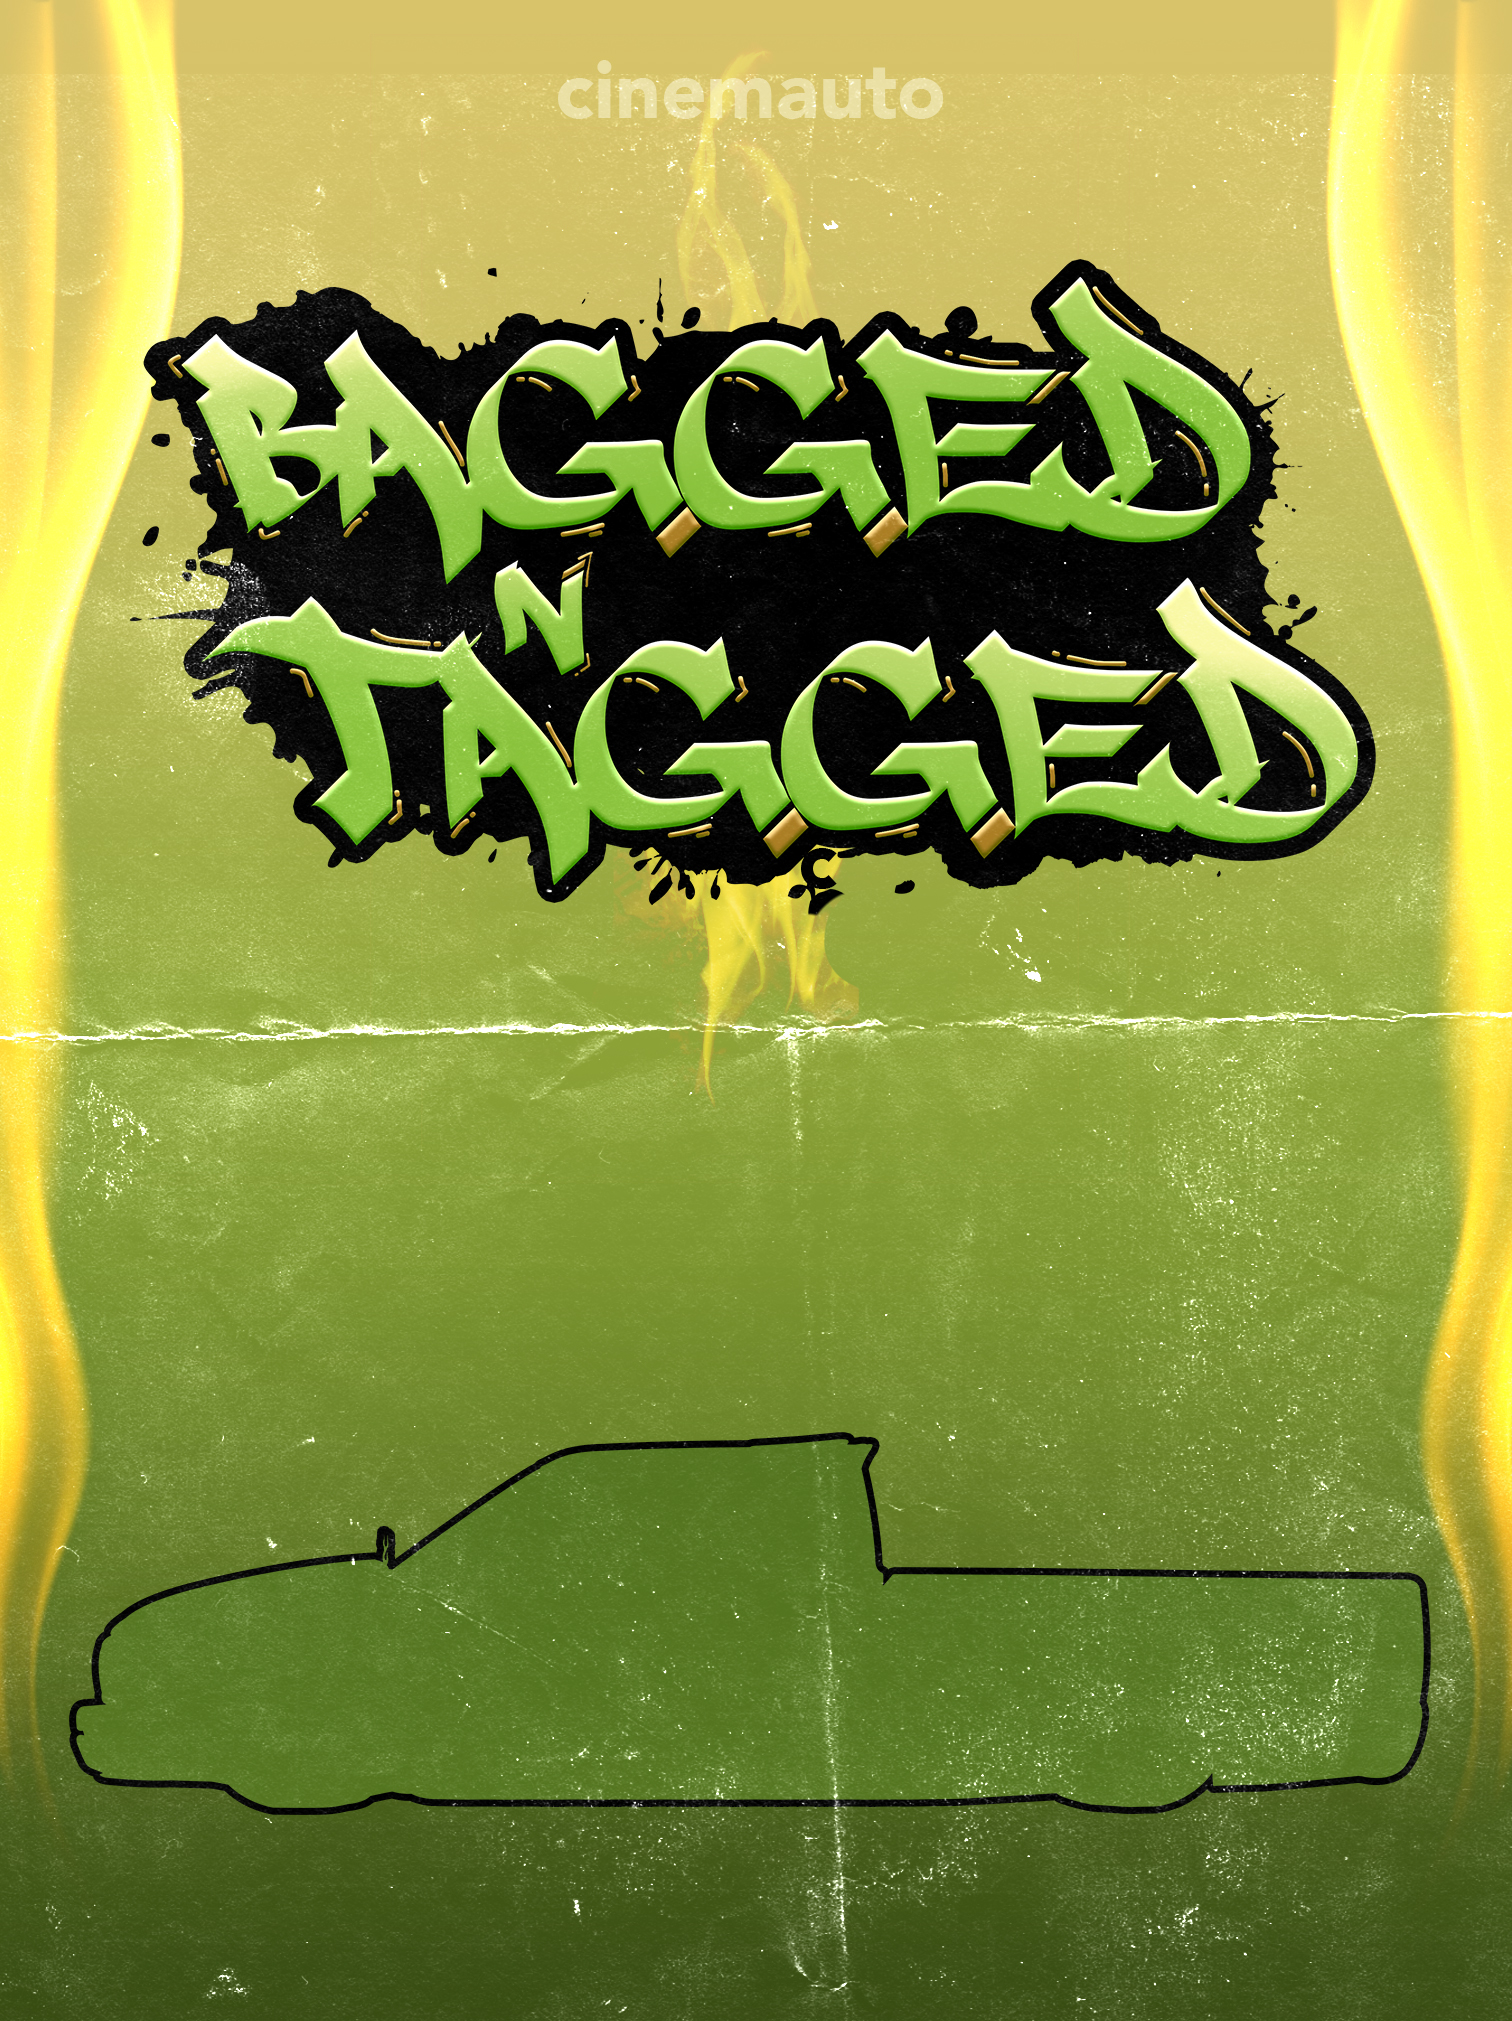 Posters-BaggedNTagged.jpg